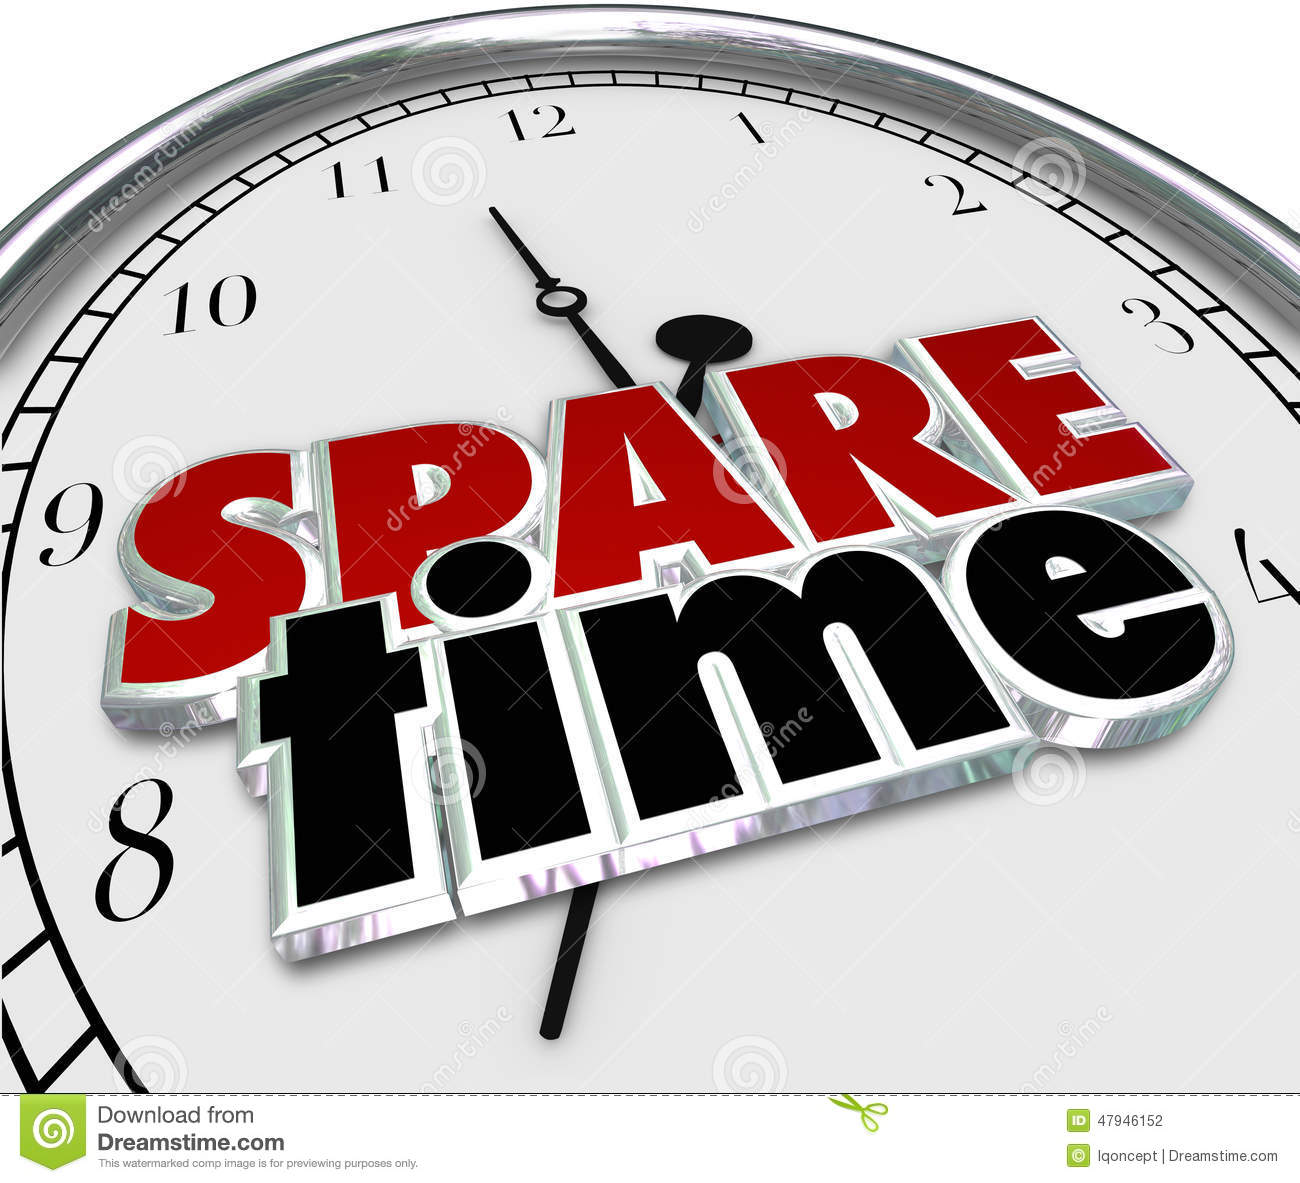 Spare Free Time Passing Leisure Activities Clock Hours Minutes Stock Illustration   Image  47946152